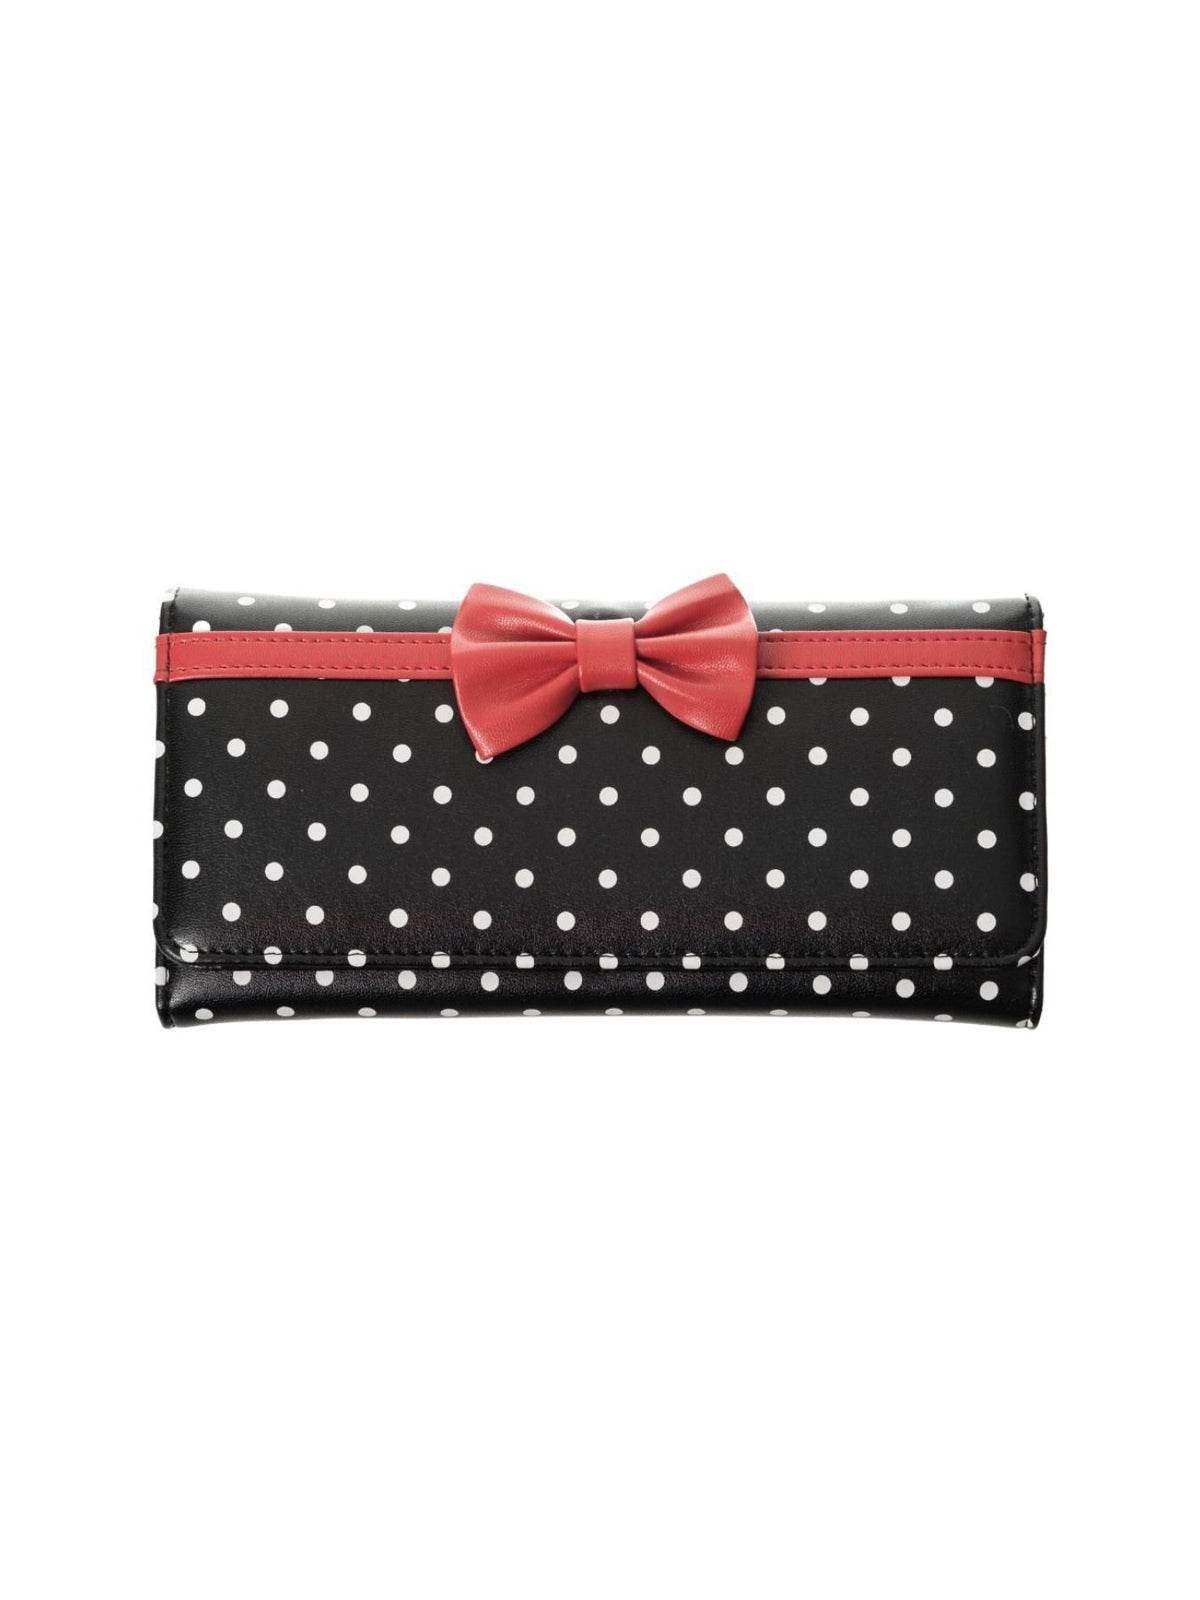 Banned Carla 50s Wallet (Black/Red) - Bohemian Finds